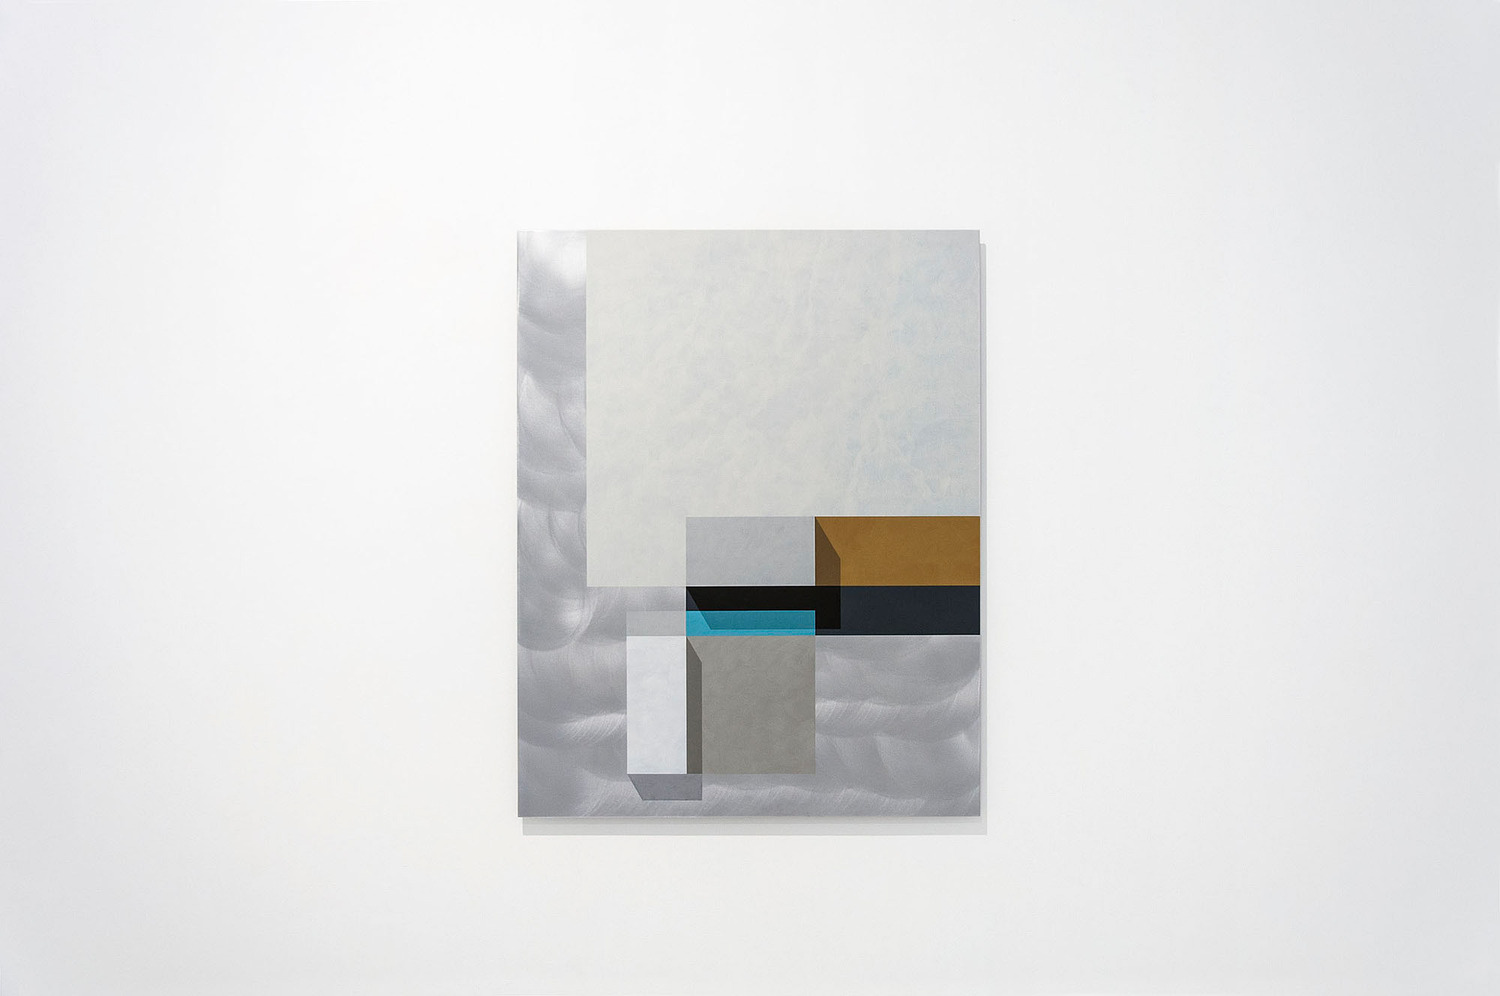 Tempo House, 2013, Acrylic on aluminium, 95 x 75 x 2.5 cm